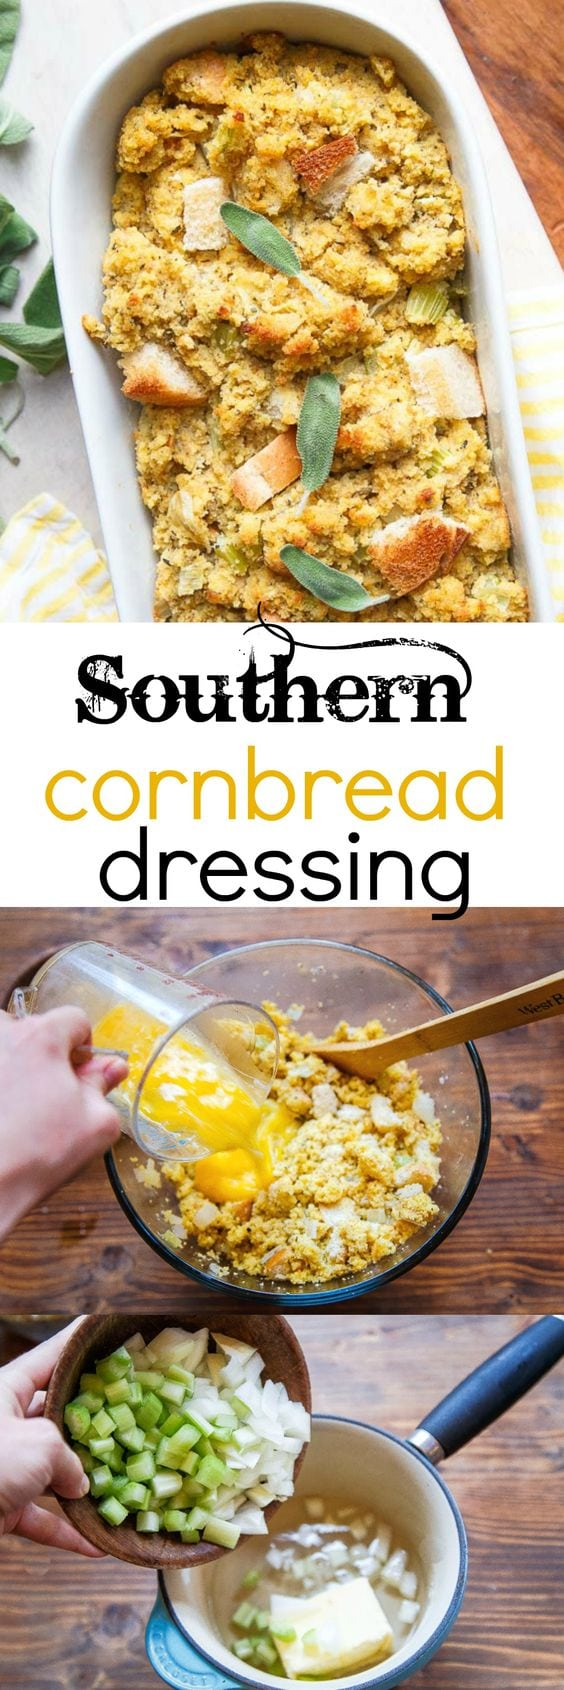 Southern cornbread dressing. This is the only dressing recipe you need! Made with crumbled cornbread, white bread cubes, and plenty of spices! It's based on a Southern Living recipe! #cornbread #cornbreaddressing #thanksgiving #thanksgivingside #sidedish #thanksgivingsidedish #southern